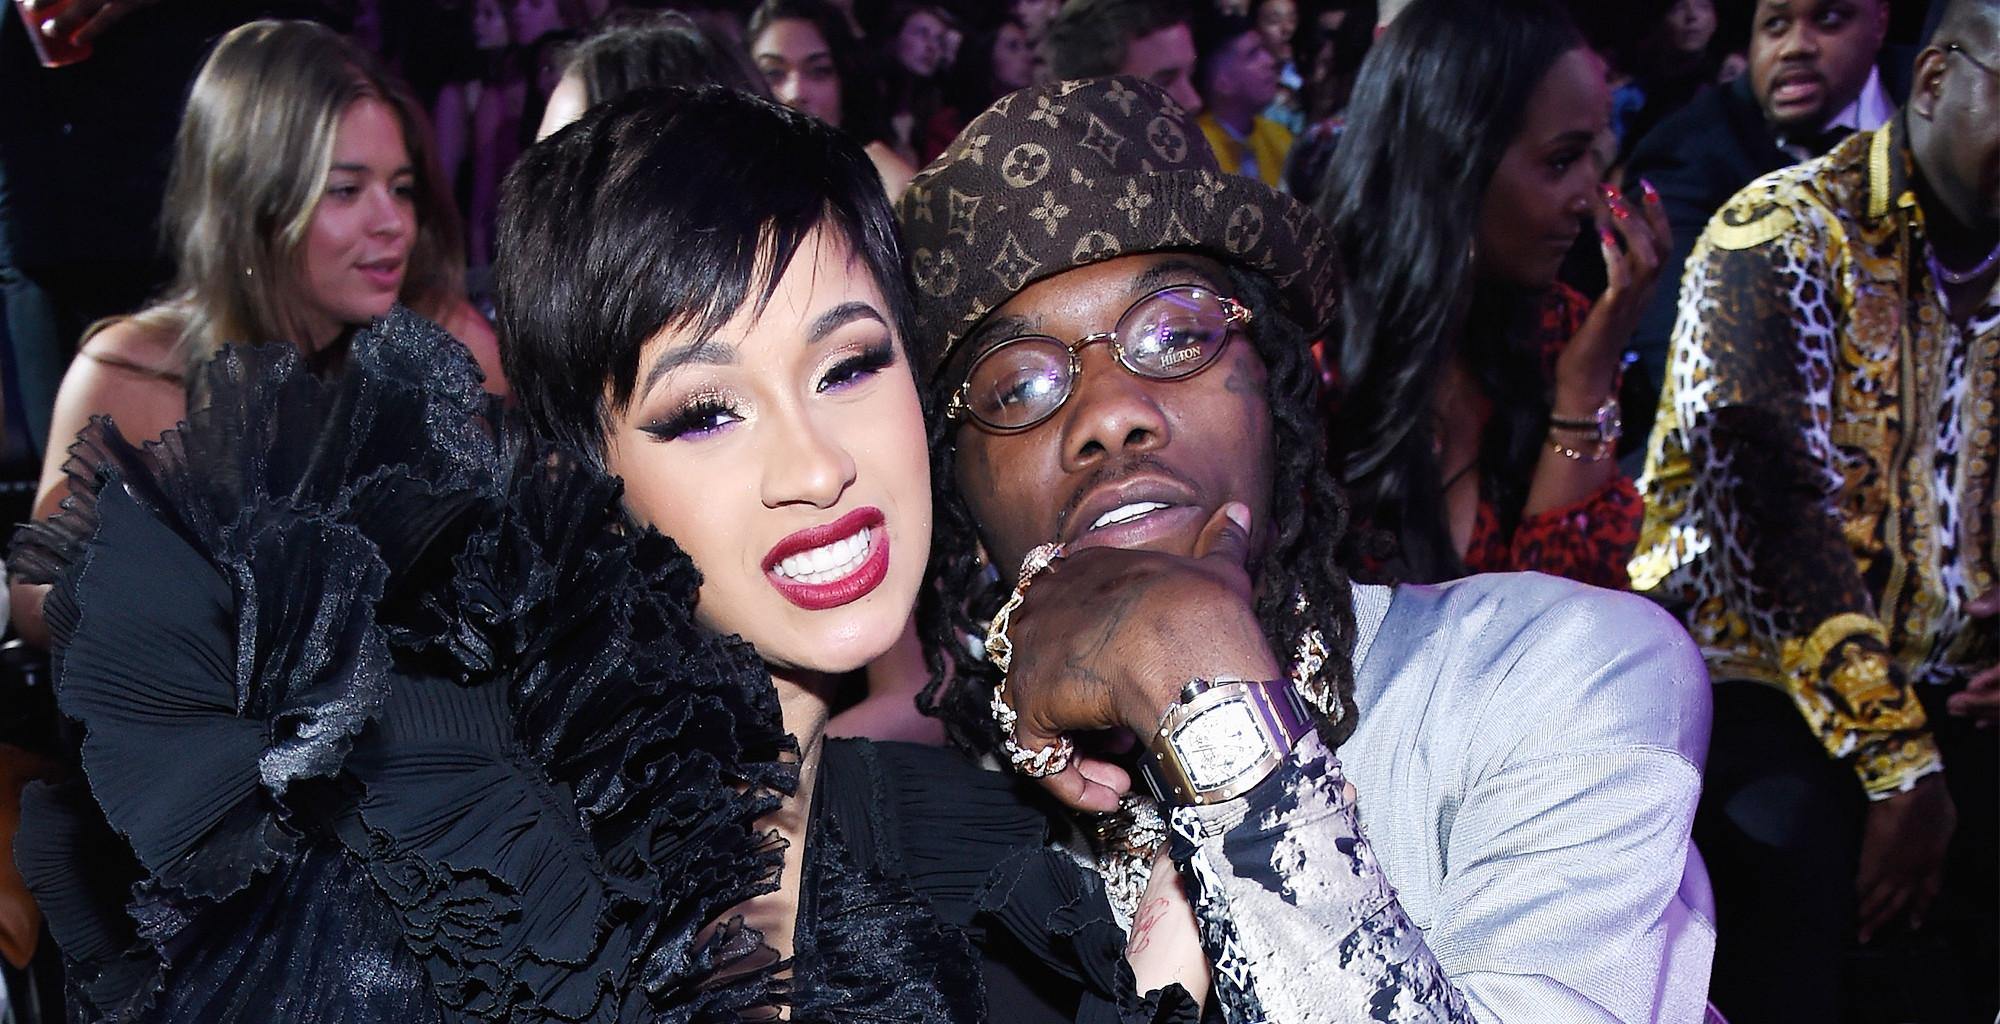 Cardi B And Offset - She Reportedly Loves His Attempts To Win Her Back But She's Not Yet Ready To Reunite!